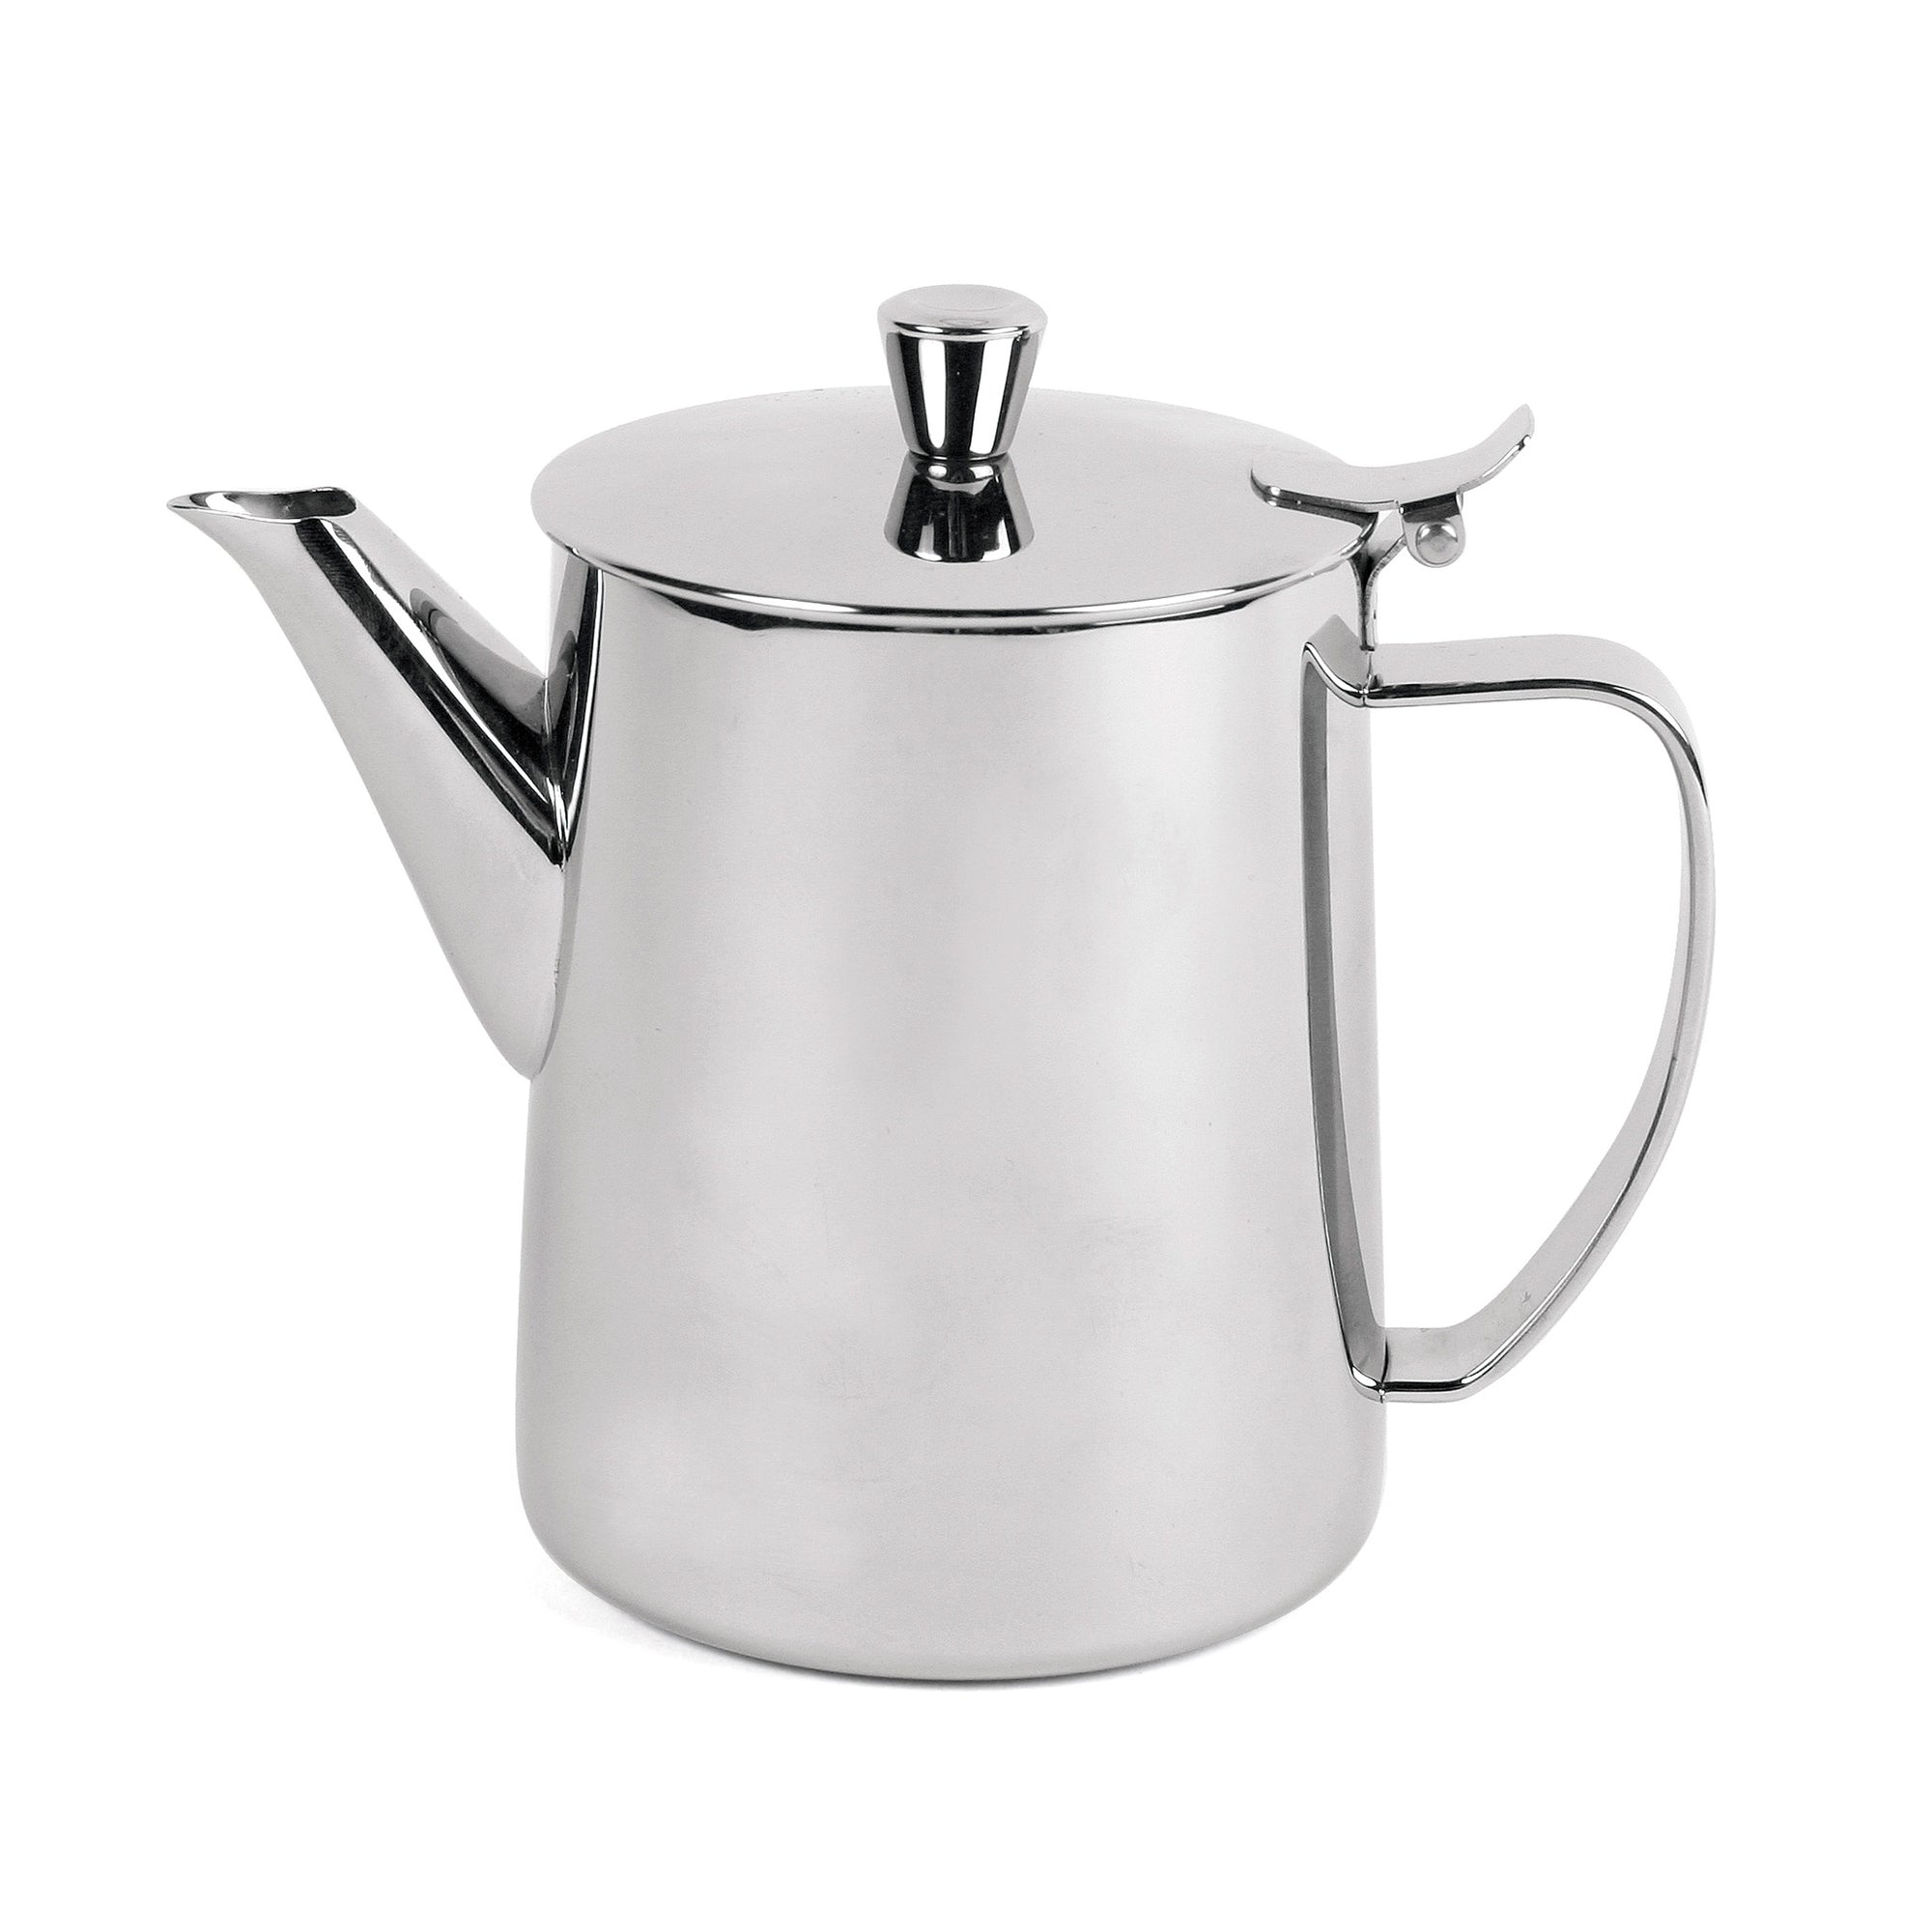 Classic Stainless Coffee Server 1,5L - Merx - Espresso Gear